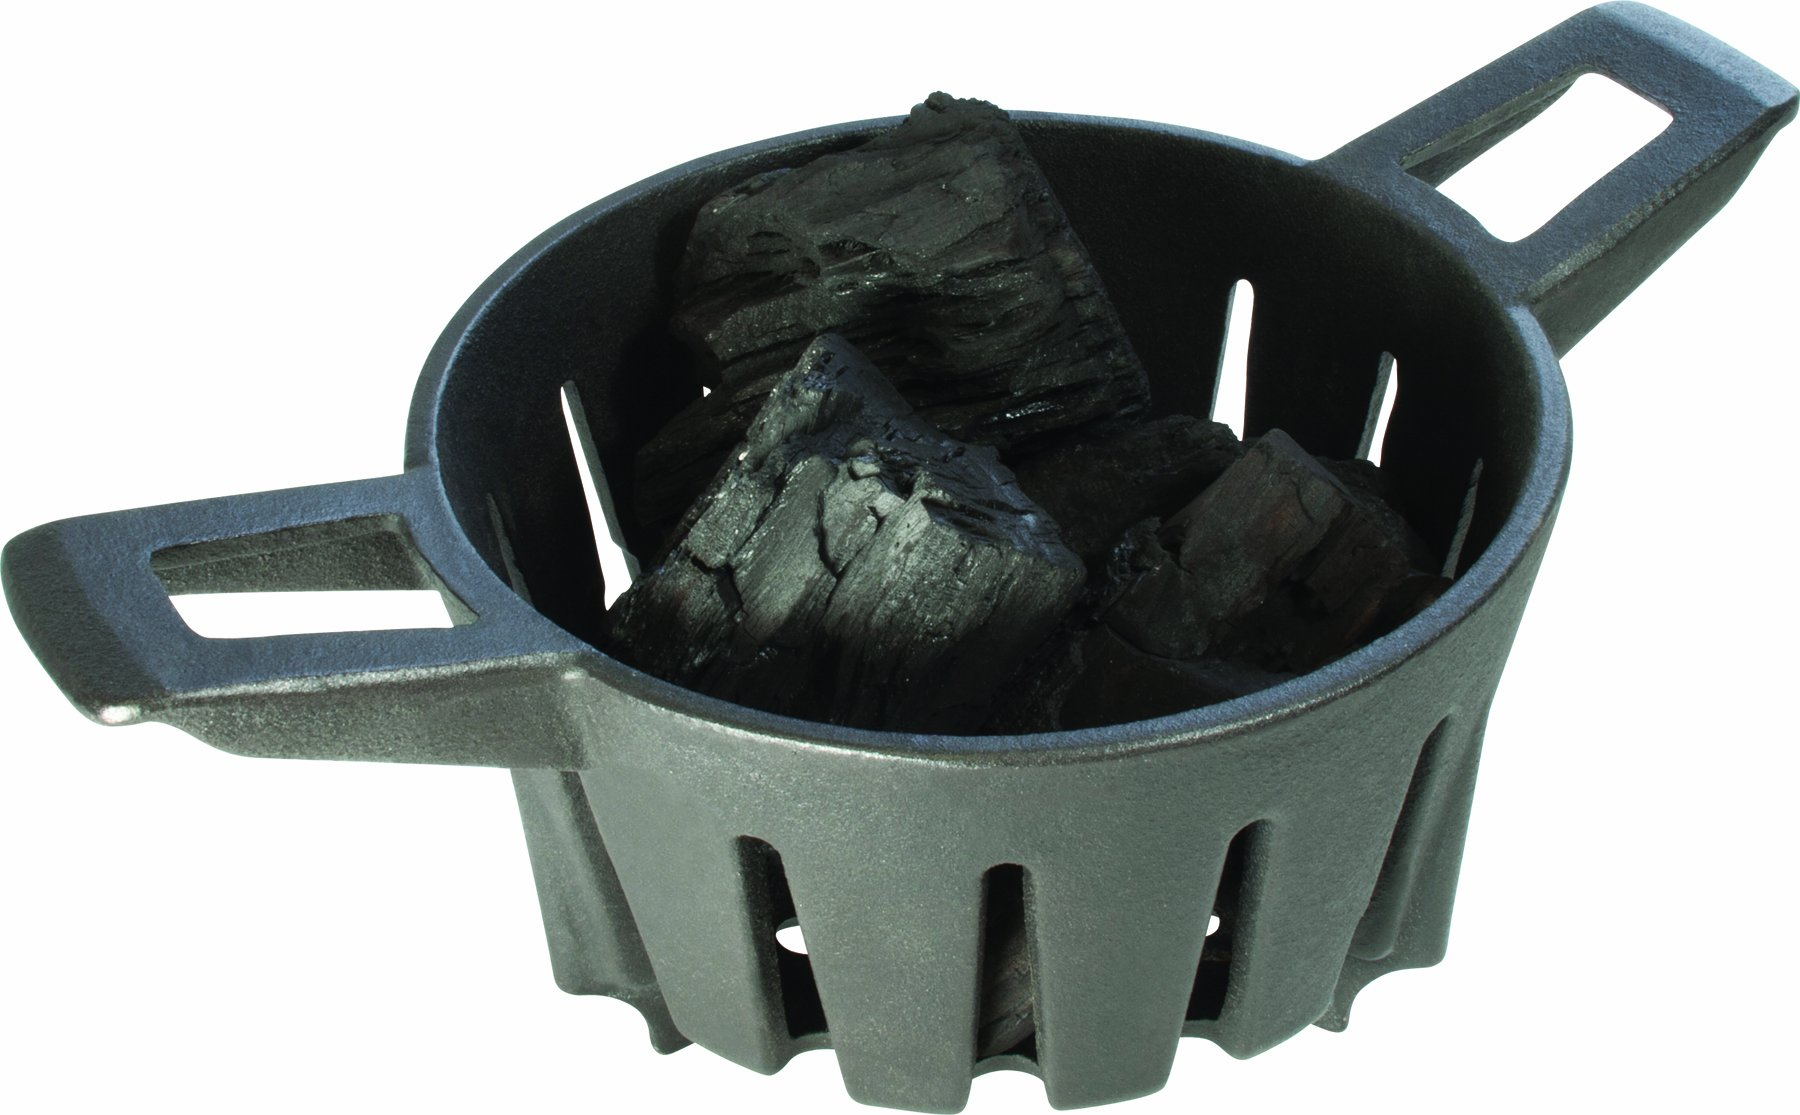 Broil King KA5565 Keg Caddie Charcoal Basket, Black by Broil King